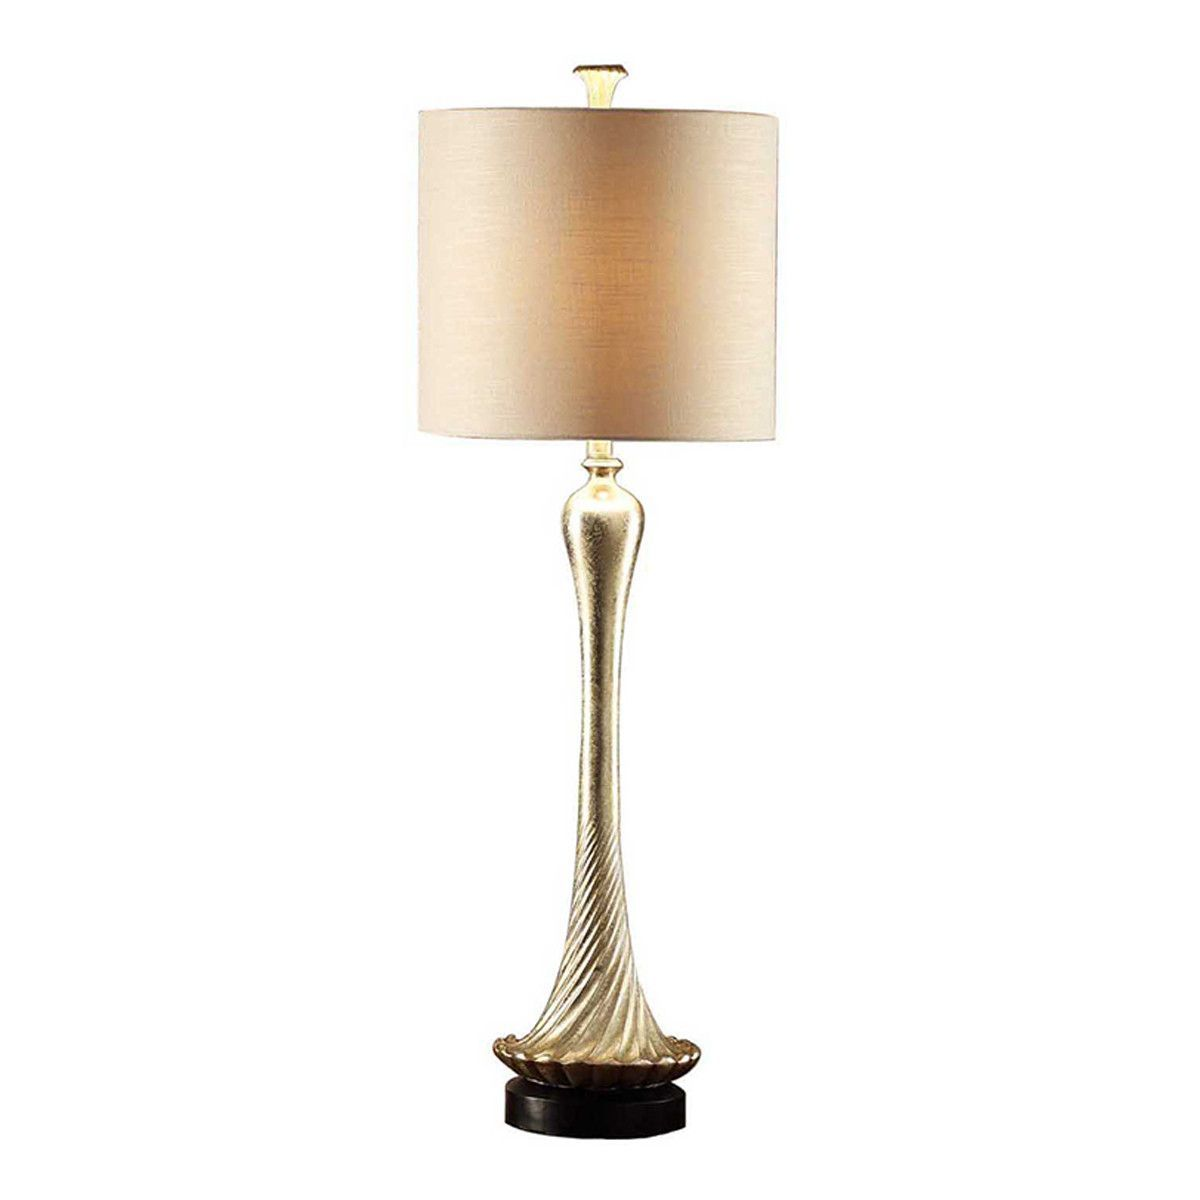 Alexandra Table Lamp